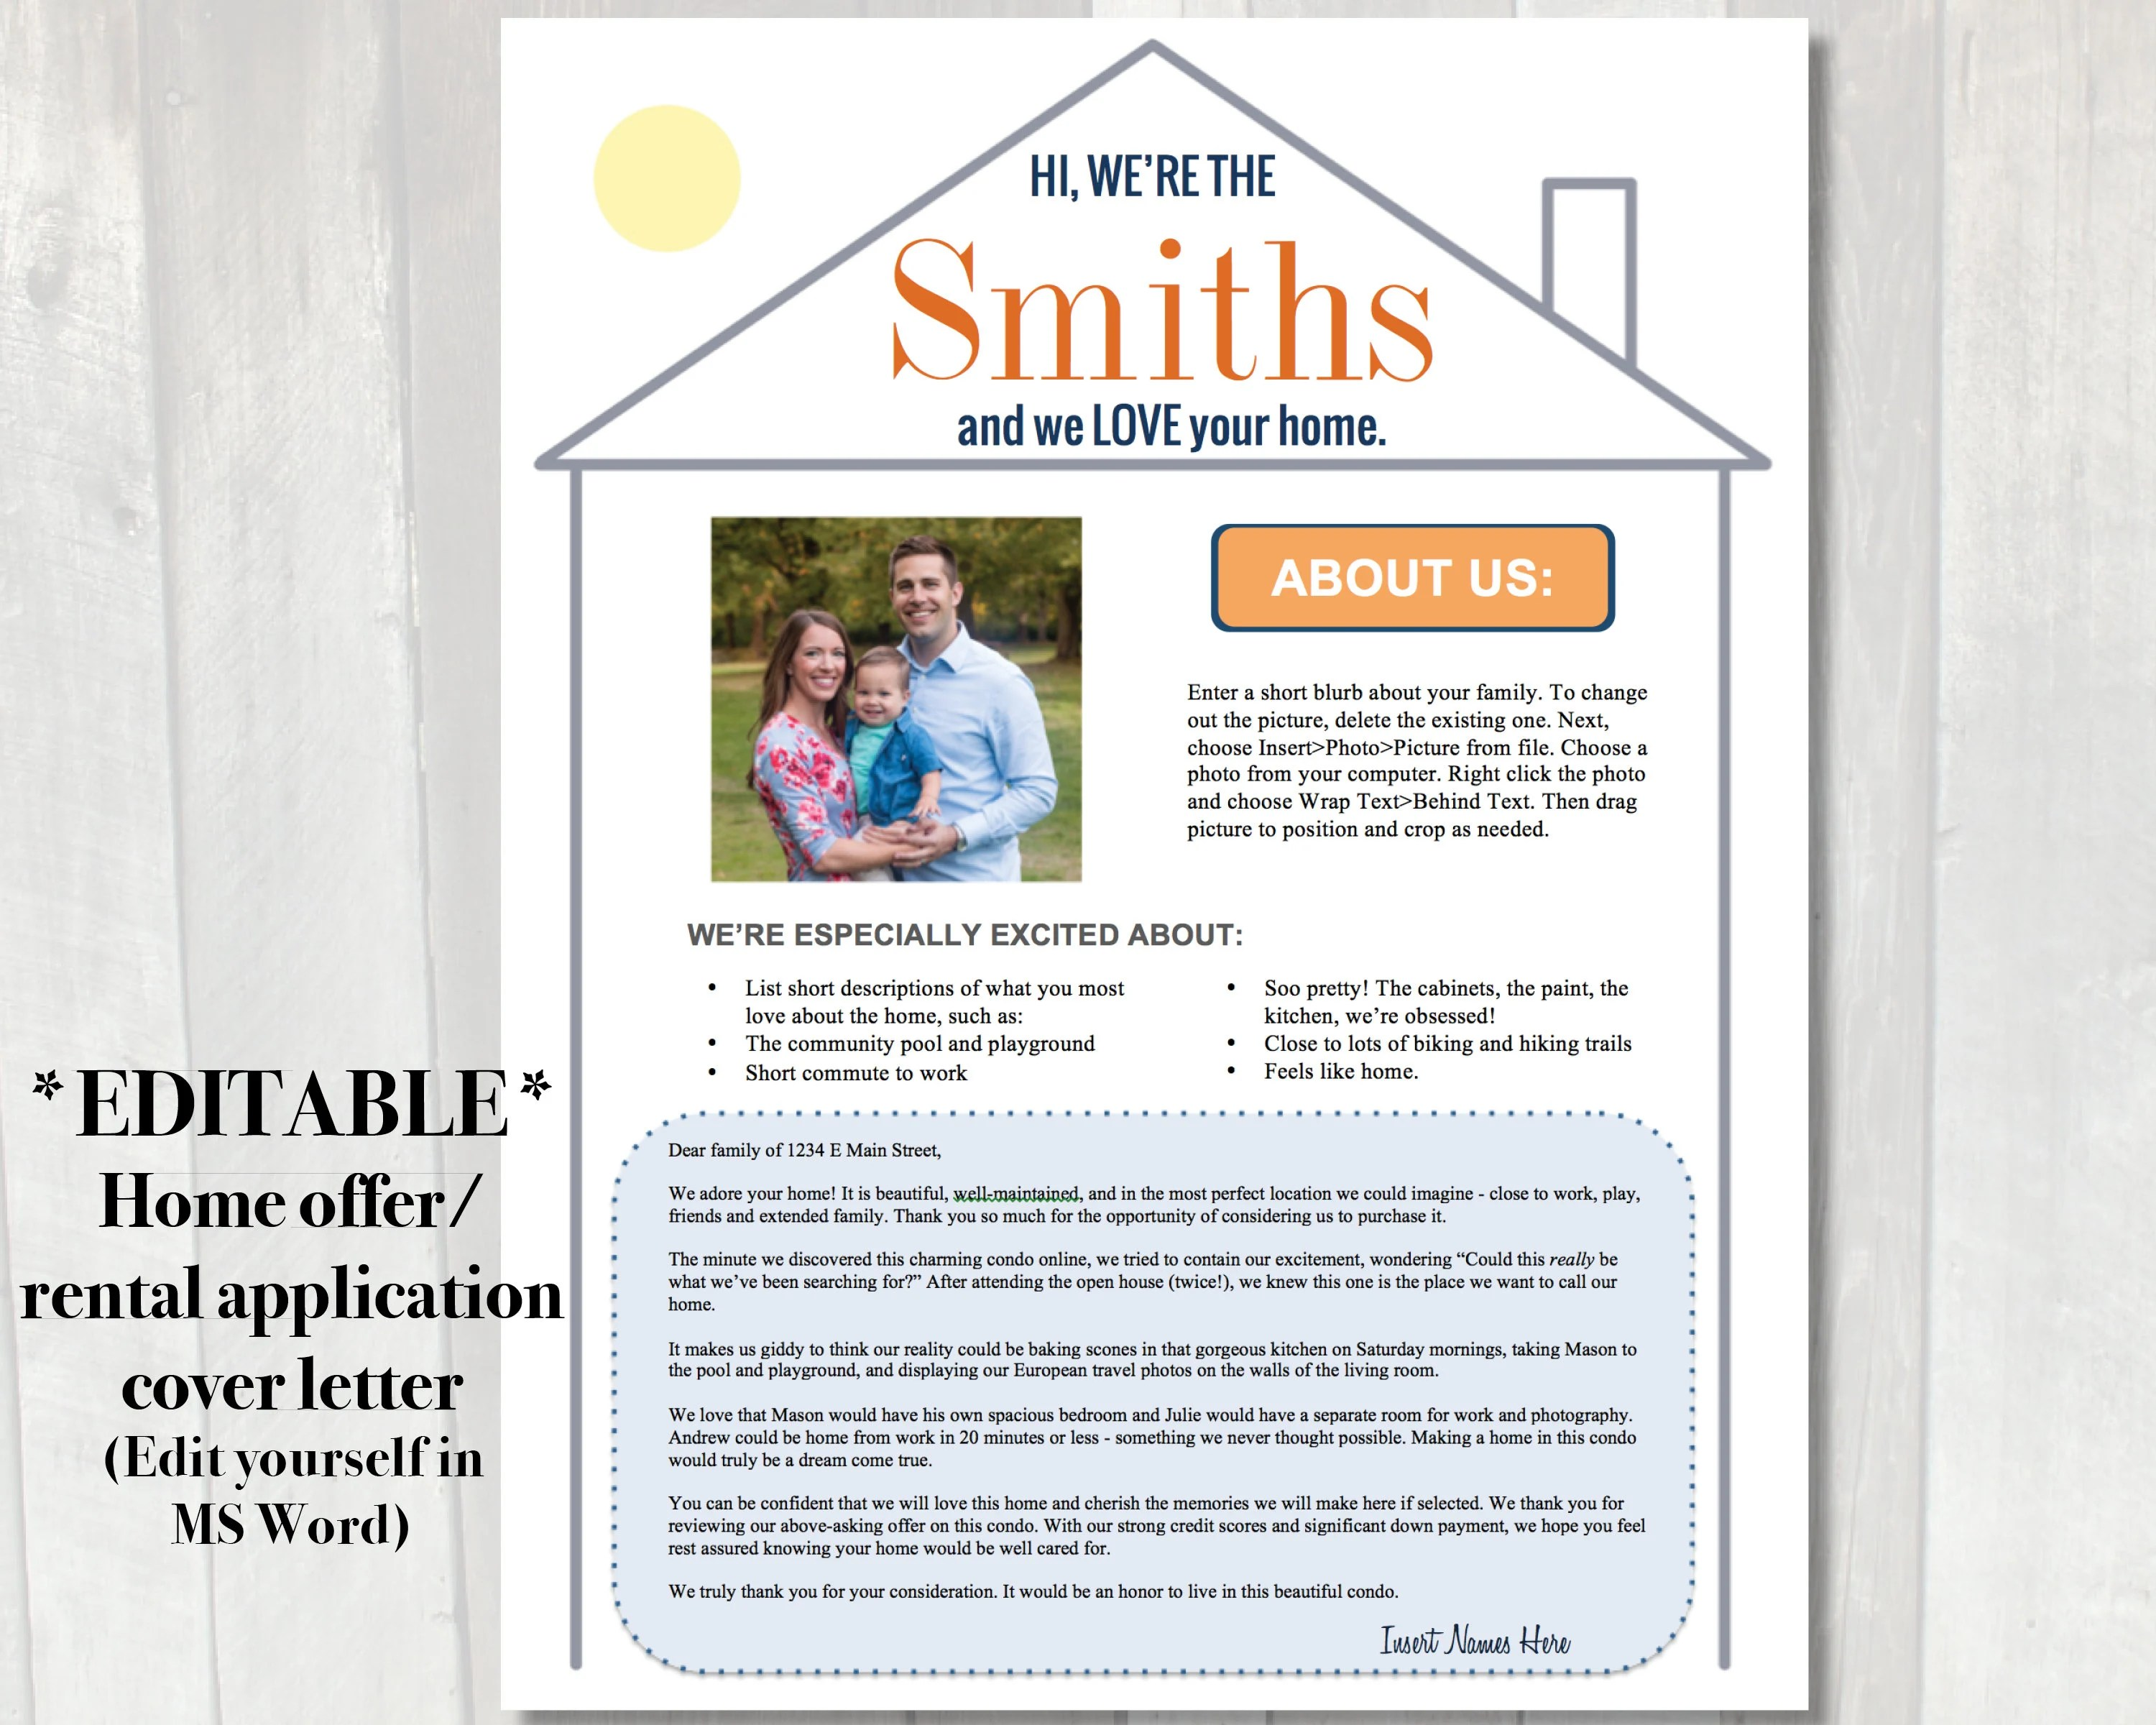 Buyer may have a problem while dealing or competing with all cash buyers. Editable Home Offer Letter Customizable Cover Letter For Etsy